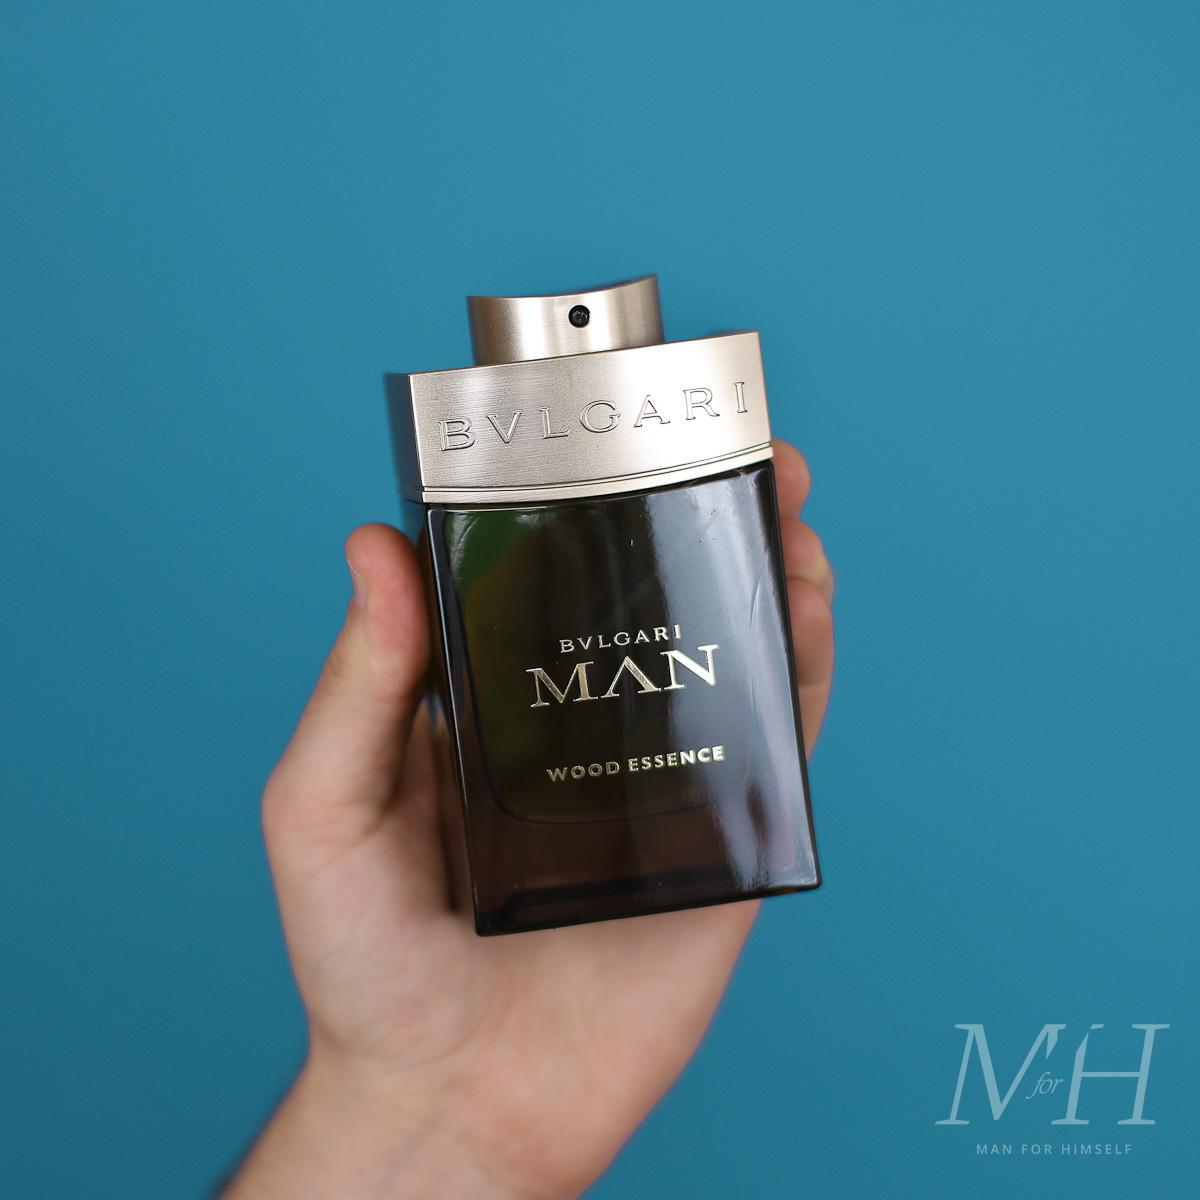 bvlgari-man-wood-essence-product-review-man-for-himself